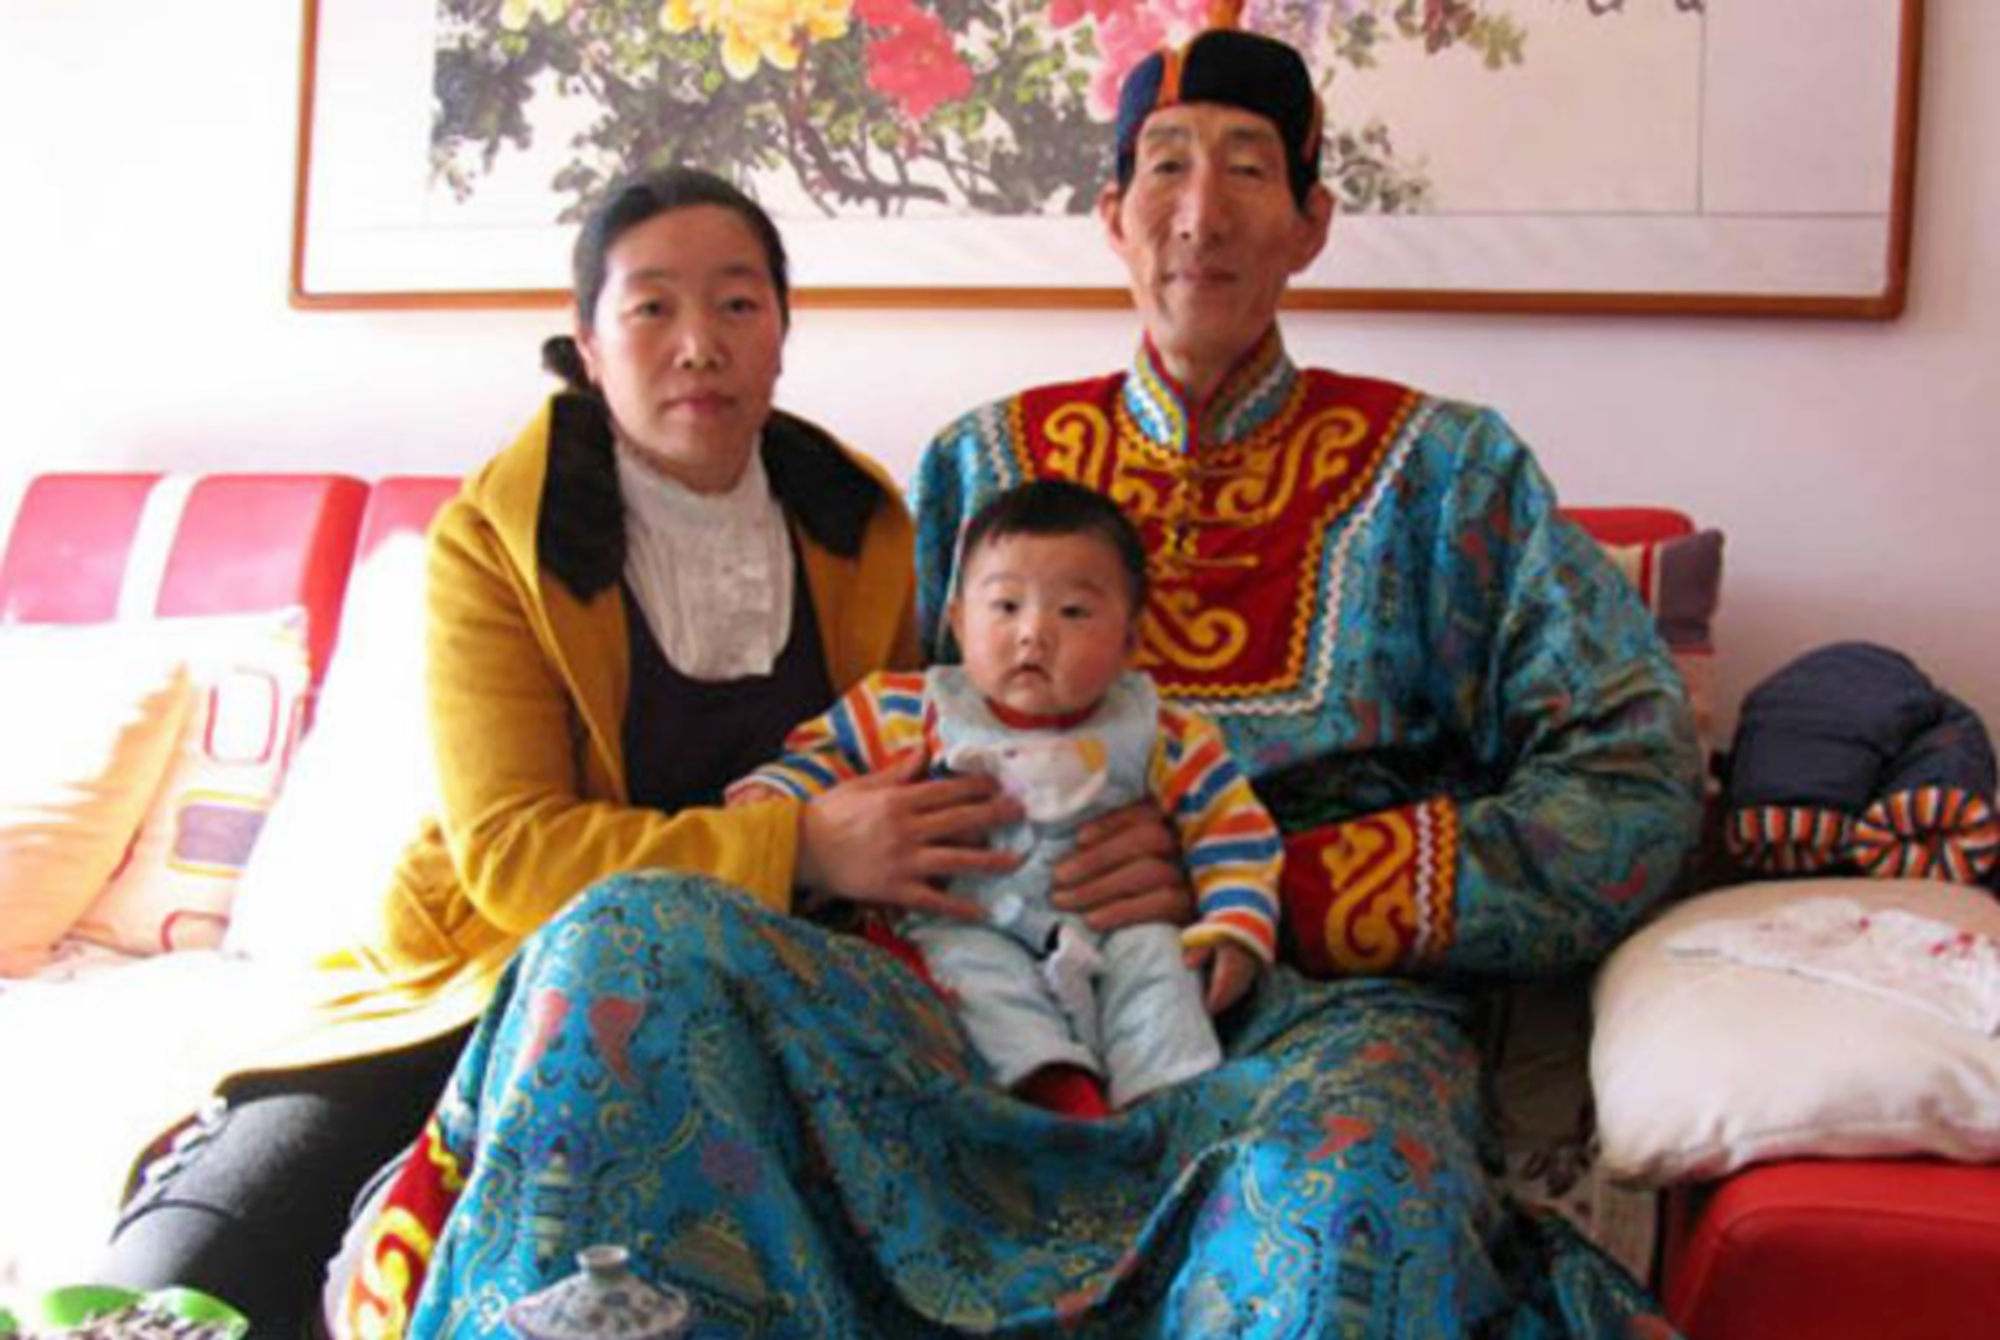 """The No. 1 Giant in China"""" Bao Xishun insisted on giving birth despite the doctor""""s dissuasion, and now still wants a second child 